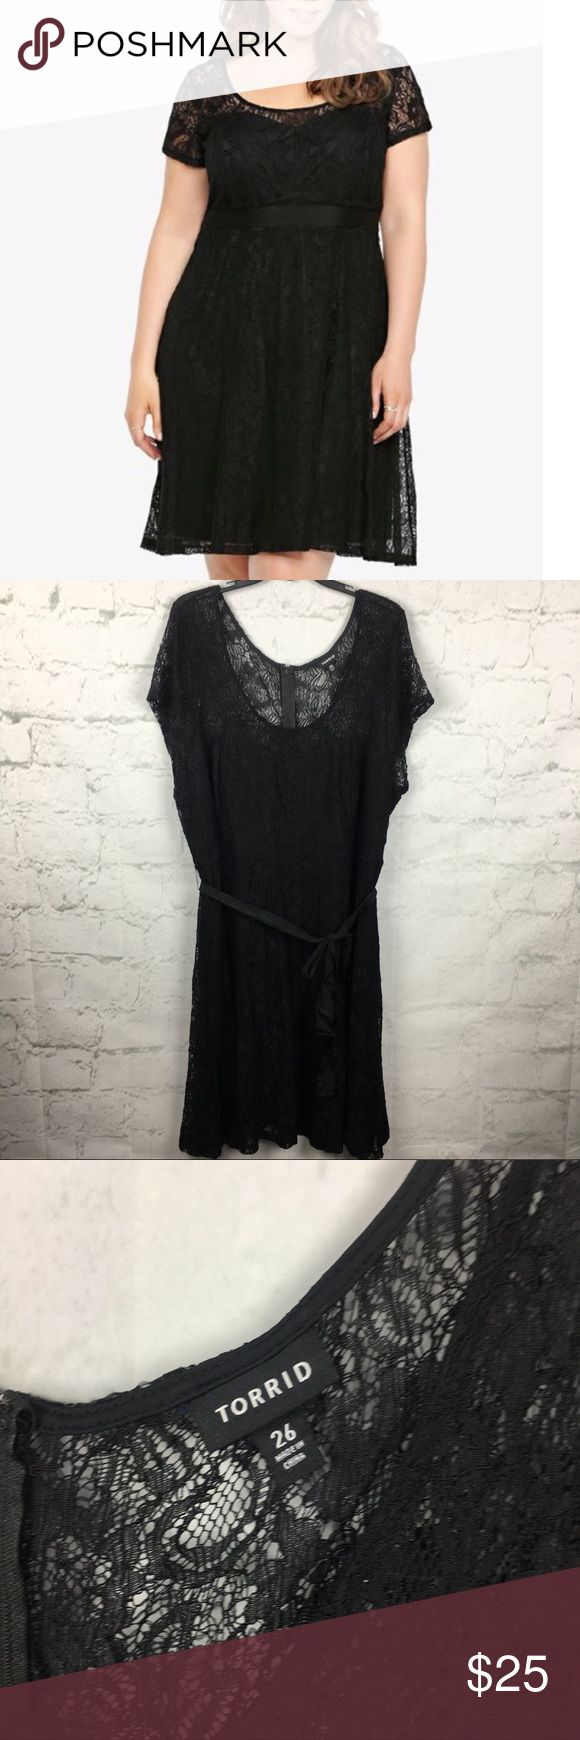 "Torrid Black Lace Overlay dress w tie bow sz 26 Little black dress perfect for all occasions. Size 26. 25"" armpit to armpit laying flat. Length- 44"". 55% nylon, 45% rayon. Gently used with no flaws torrid Dresses"